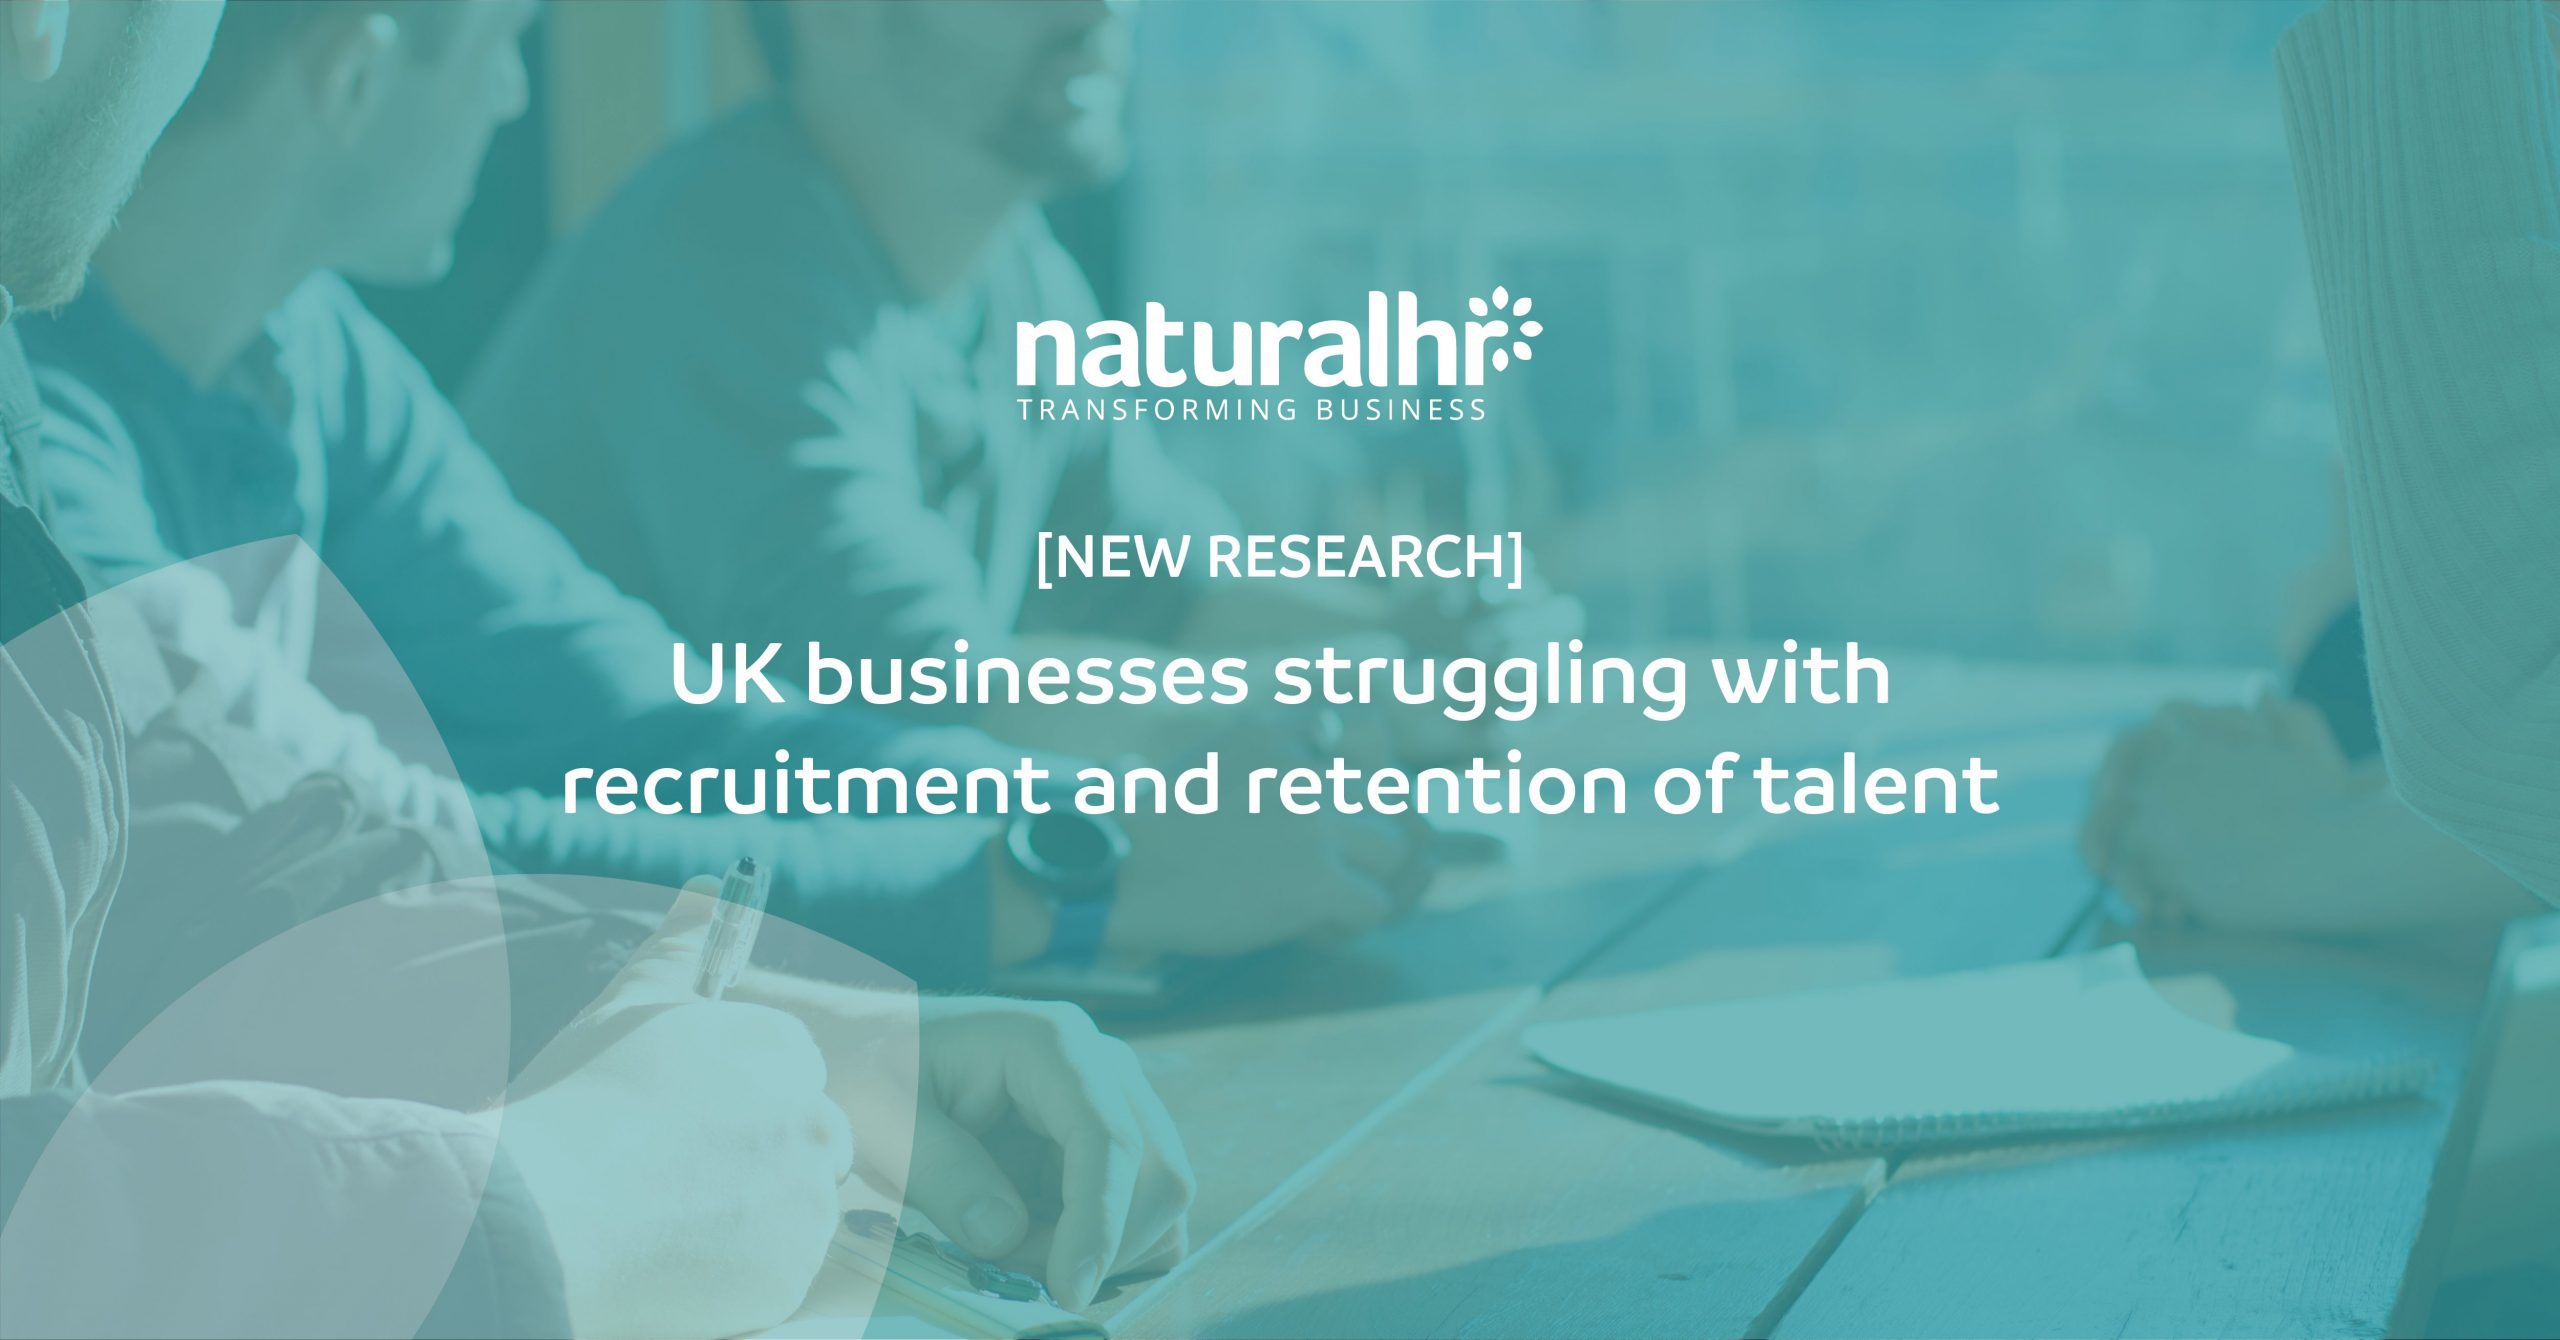 recruitment and retention of talent